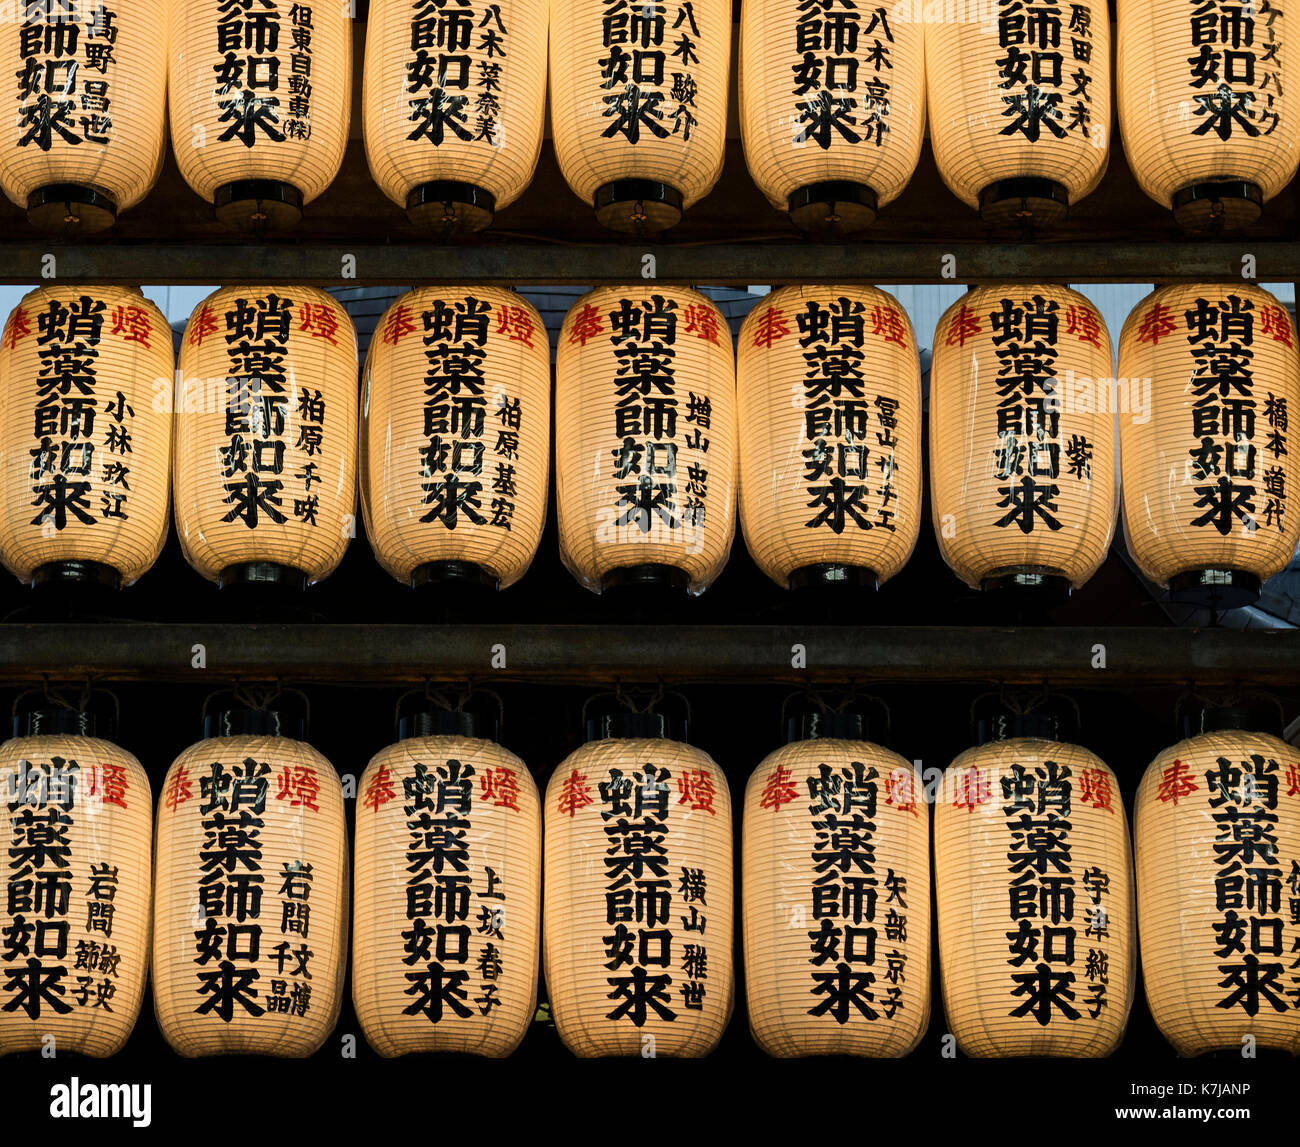 Kyoto, Japan - May 16, 2017: Row of  paper lanterns with Japanese characters along the street to the temple - Stock Image